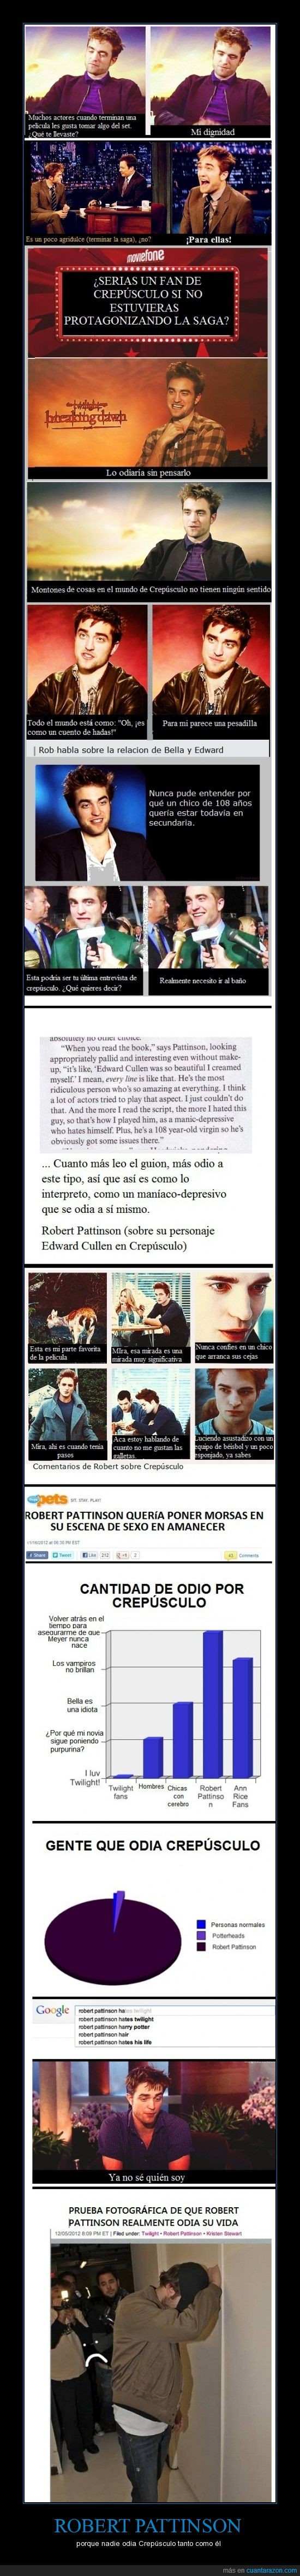 Crepúsculo,cullen,Edward,odia,Robert Pattinson,se canso de brillar,twilight